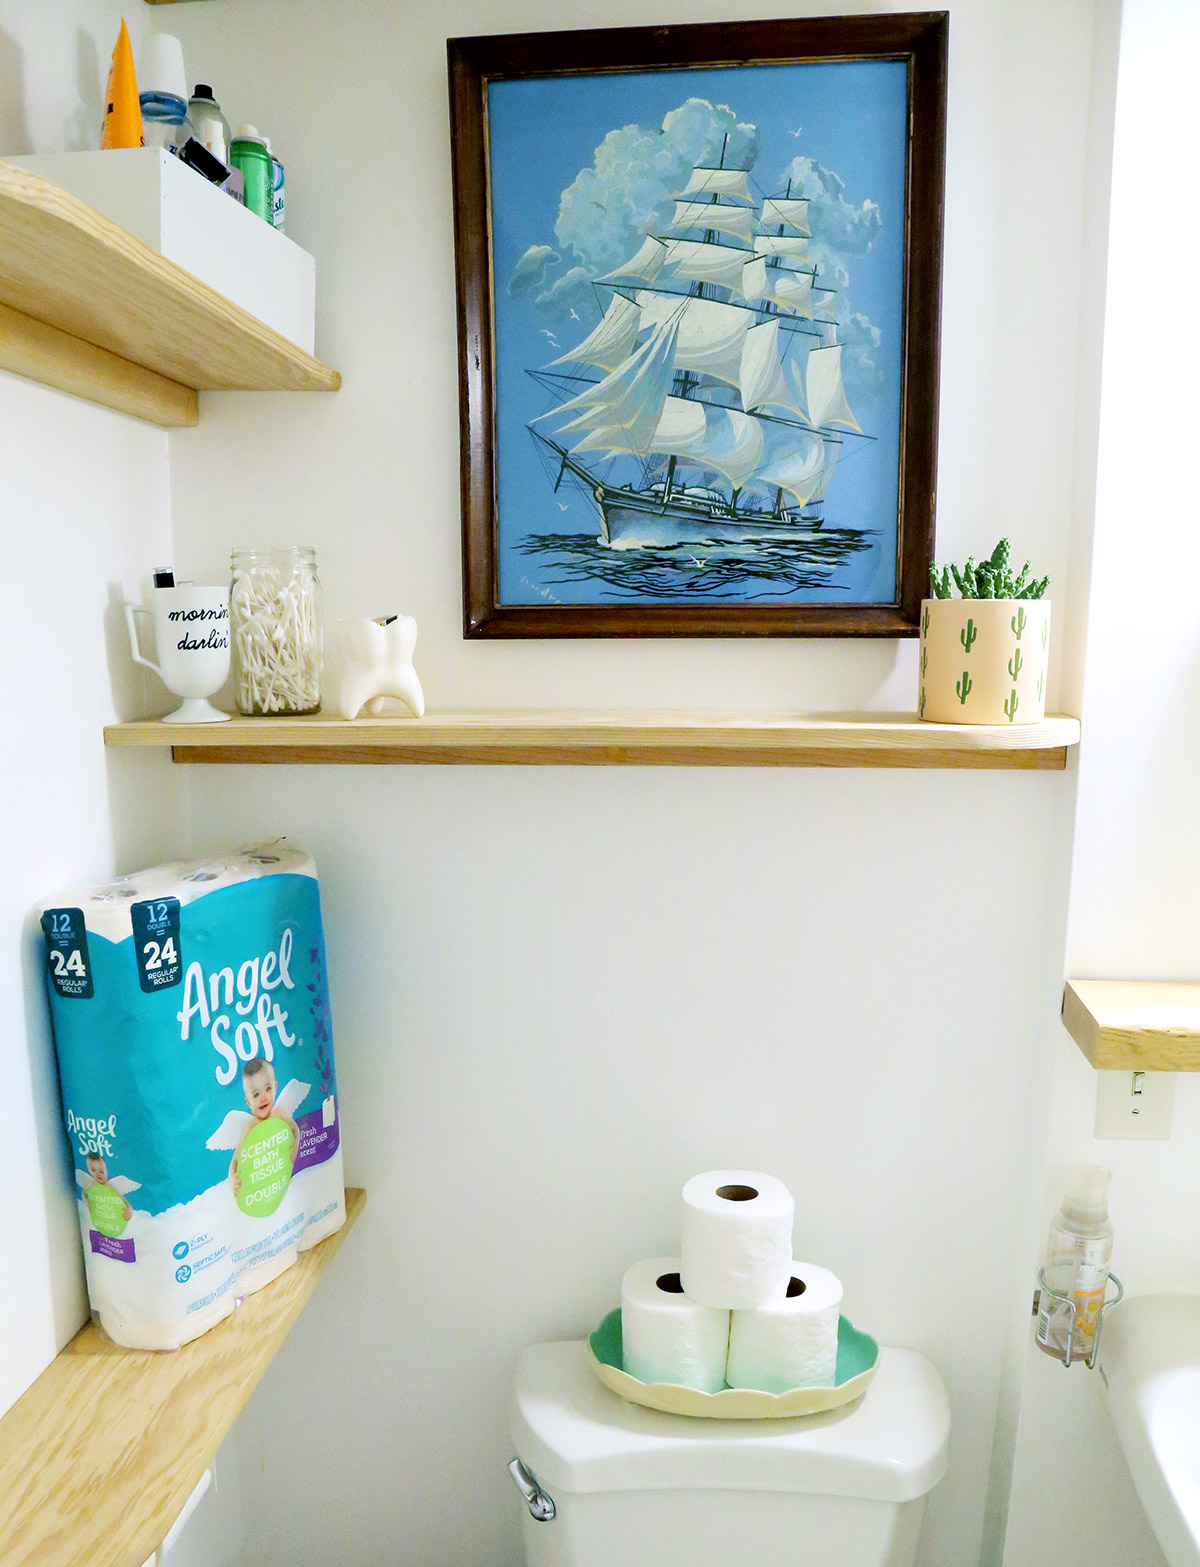 Faux Floating Shelving Units in Bathroom.